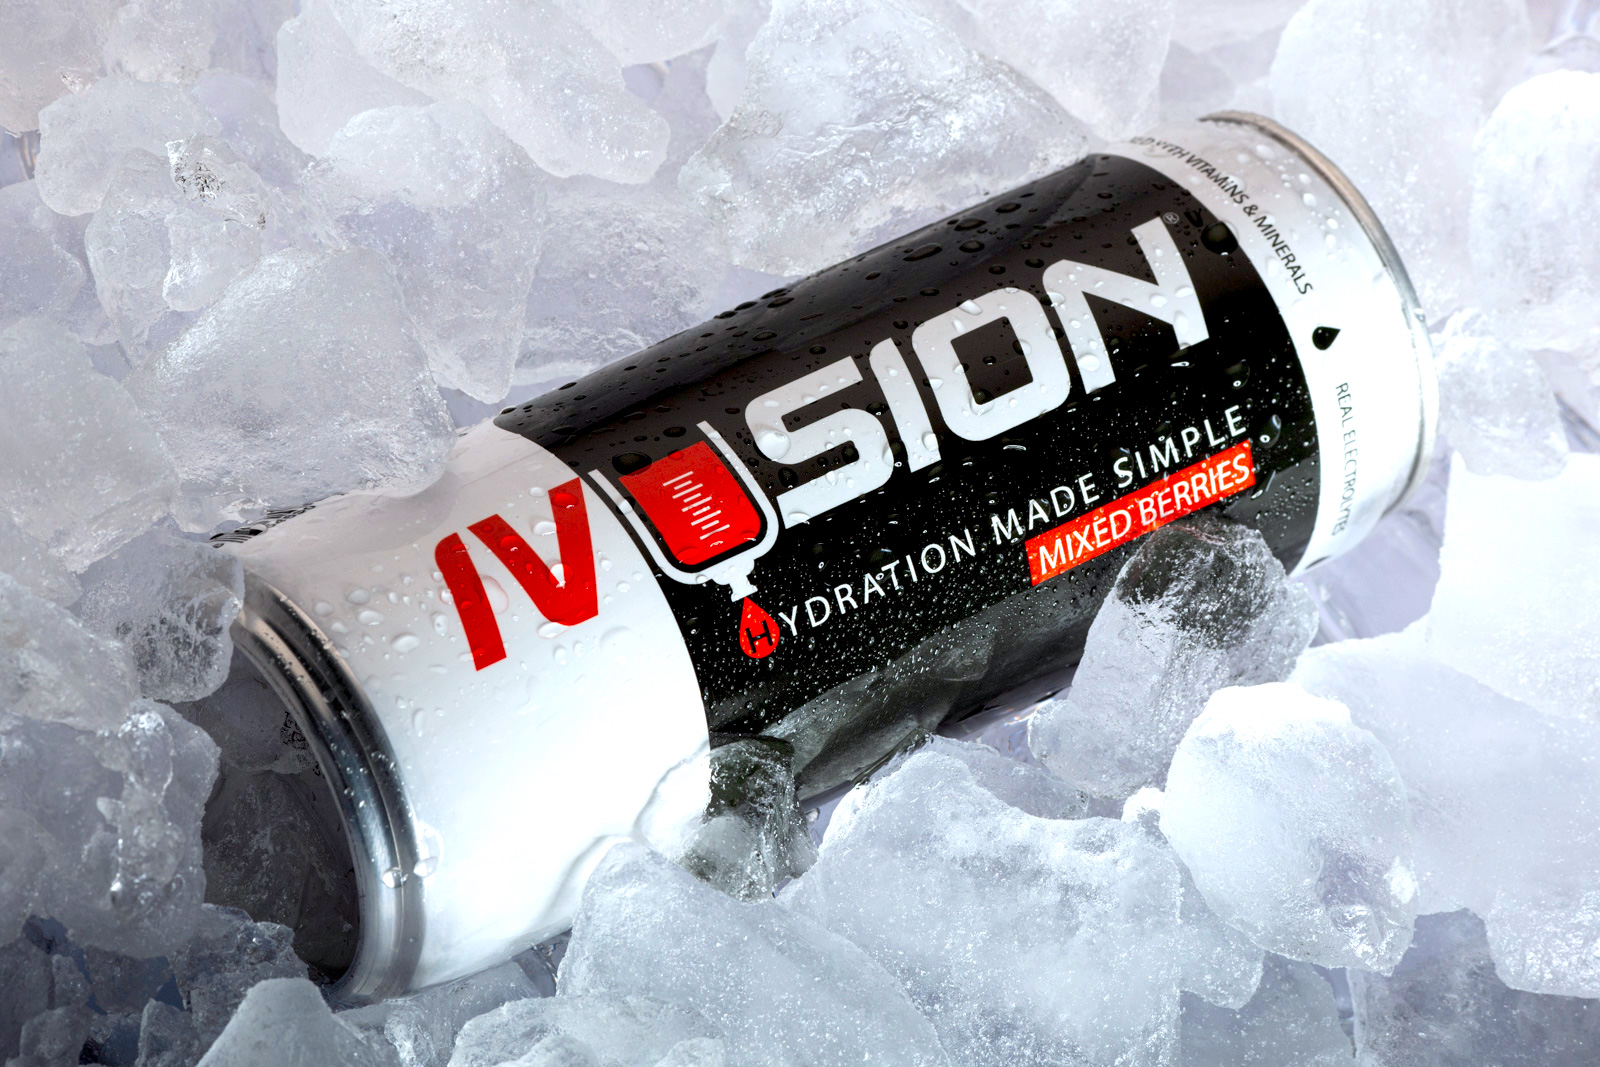 IVUSION Hydration Mixed Berries